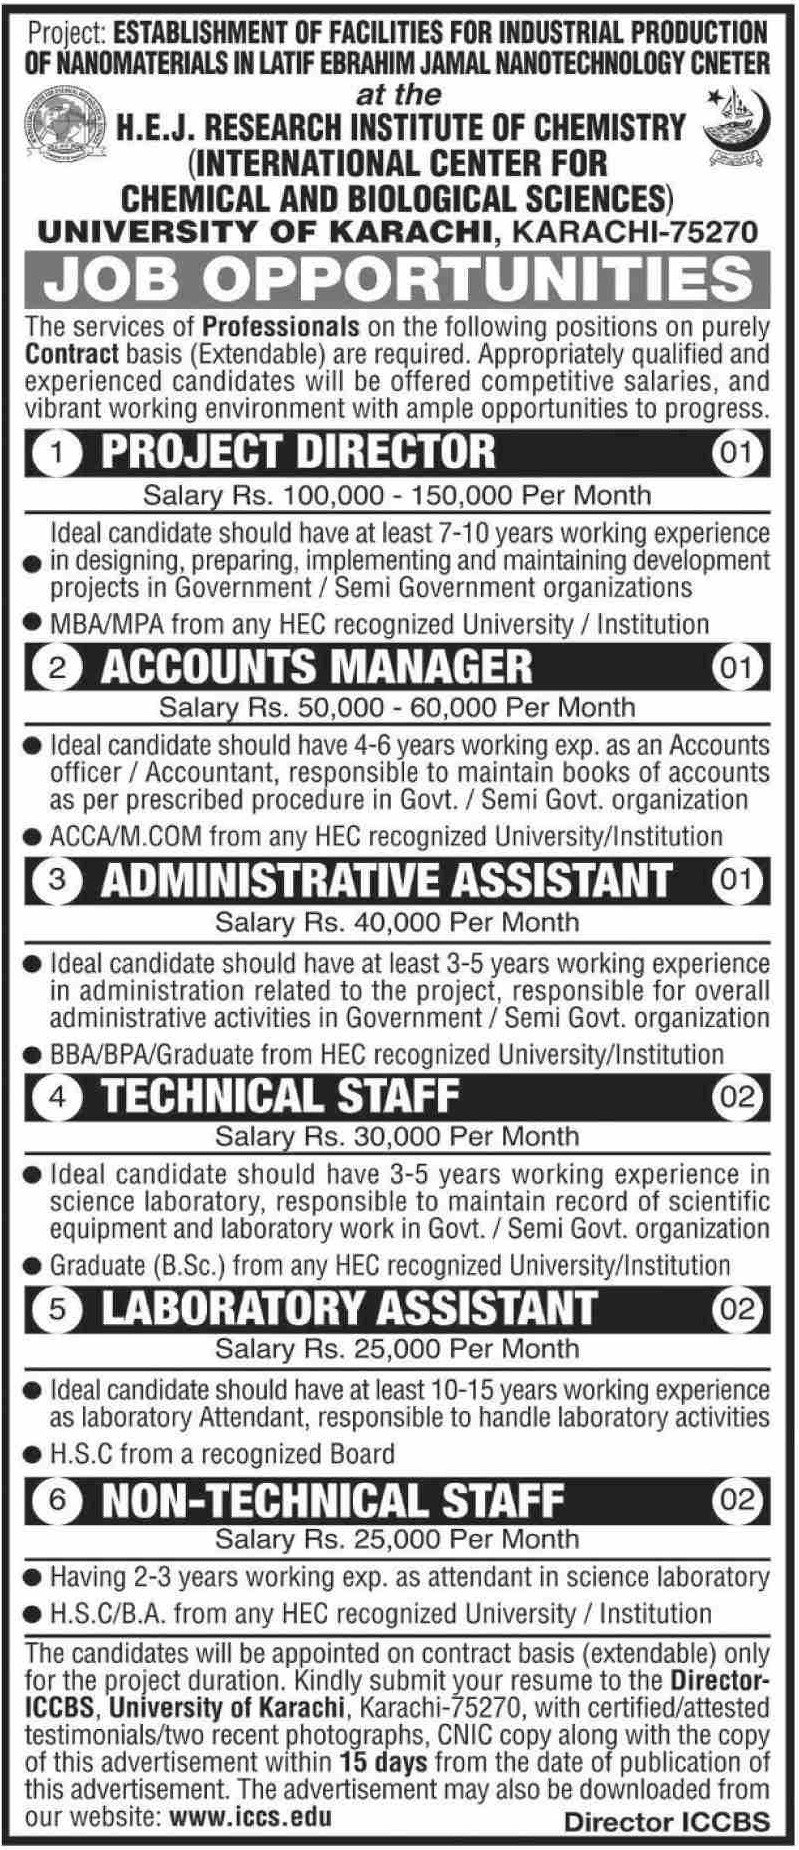 University of Karachi Jobs 2020 Sindh